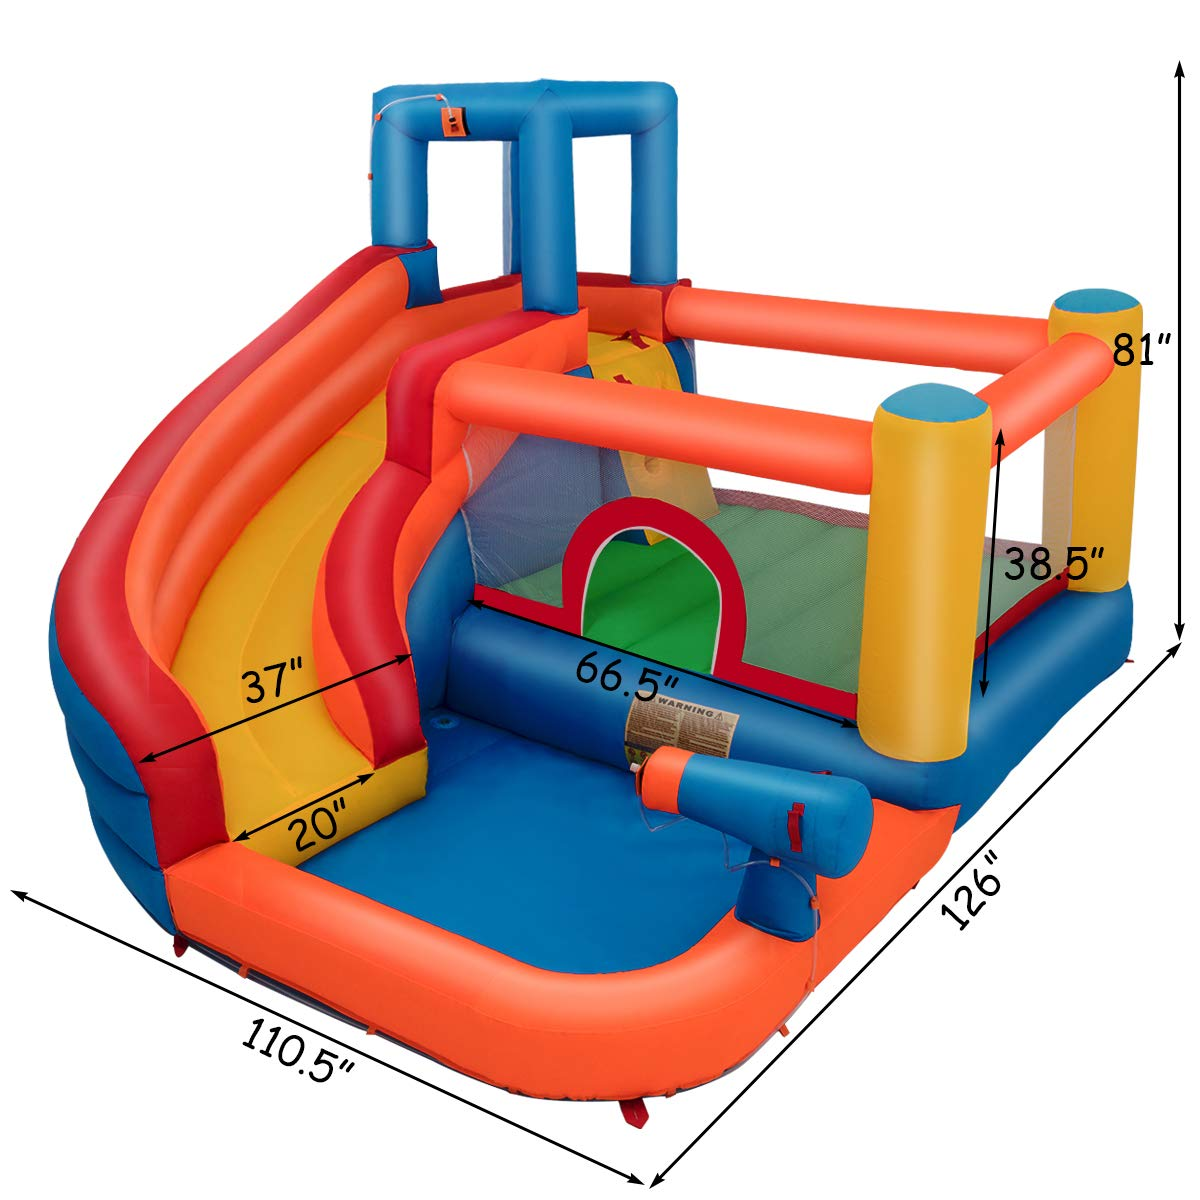 Costzon Inflatable Bounce House, 5-in-1 Water Slide w/ Climbing Wall, Jumping Area, Splash Pool, Water Cannon, Including Oxford Carry Bag, Repairing Kit, Stakes, Hose, Without Blower by Costzon (Image #7)